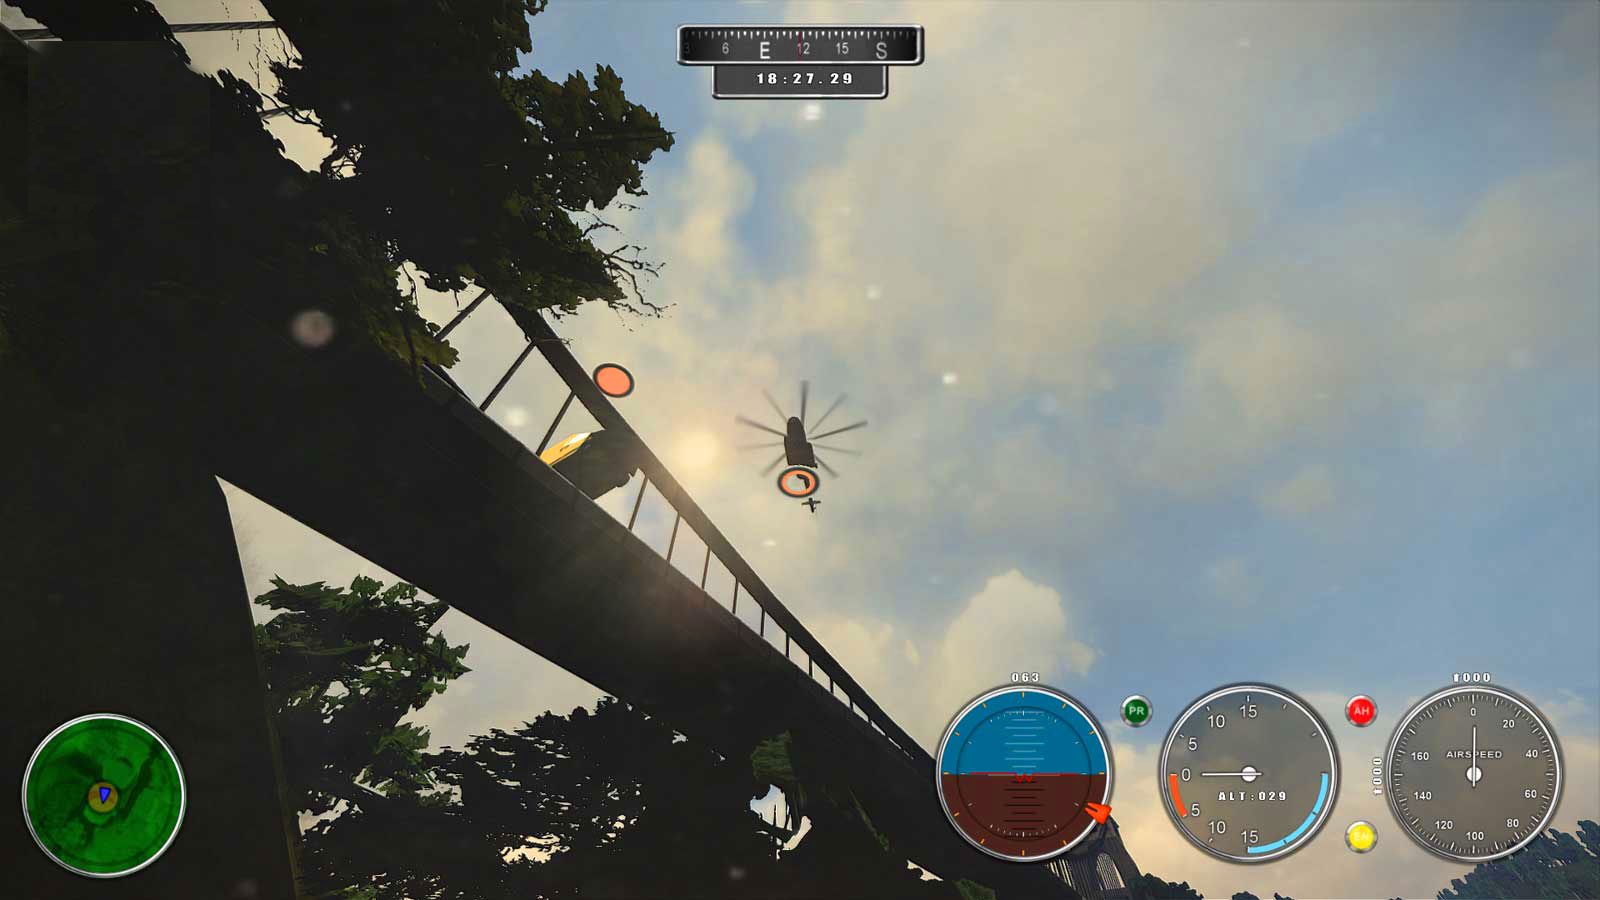 best combat helicopter simulator with 4574 Helicopter Simulator 2014 Search And Rescue on 1178342332 in addition Helicopter Simulator Pc Games List furthermore 4614 Gm 64 Rotary Wing Chieftain En further A Flight Battle Ch ions Pro A Helicopter Chaos Simulator likewise Helicopter Simulator.